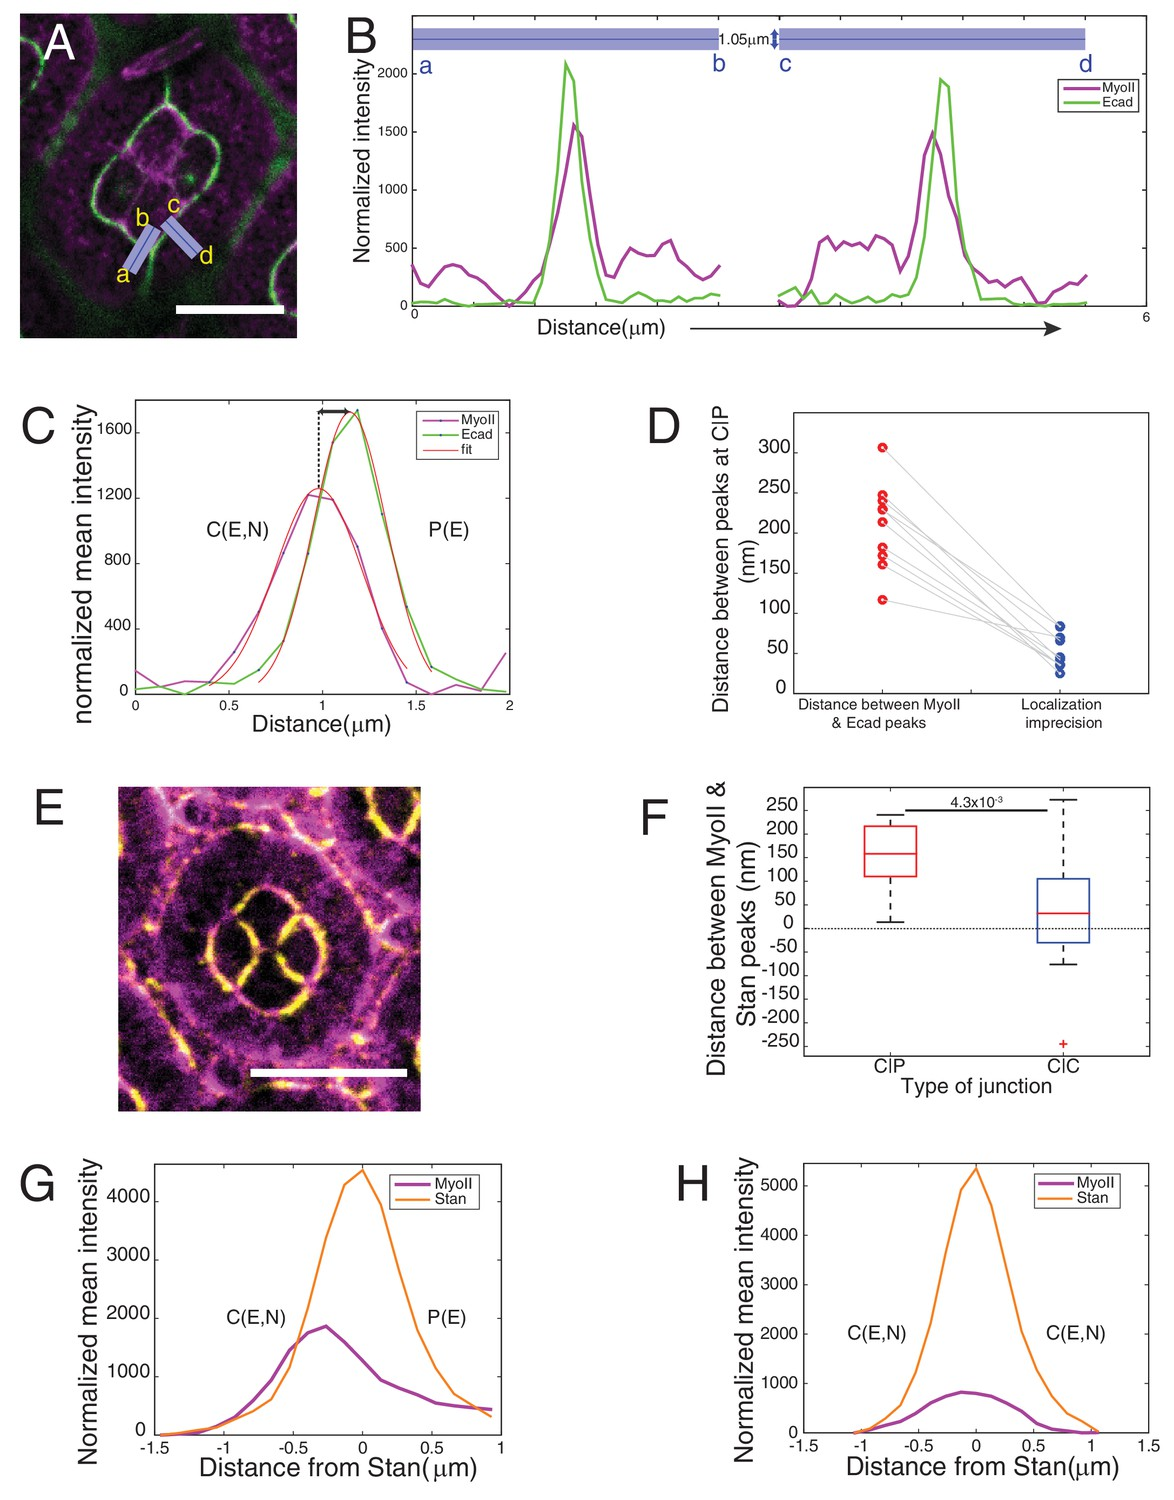 Patterned Cortical Tension Mediated By N Cadherin Controls Cell Standard B Moreover Cat 5 Connectors Diagram Along With 5e Vs Asymmetry Of Myoii Localization At Different Contacts